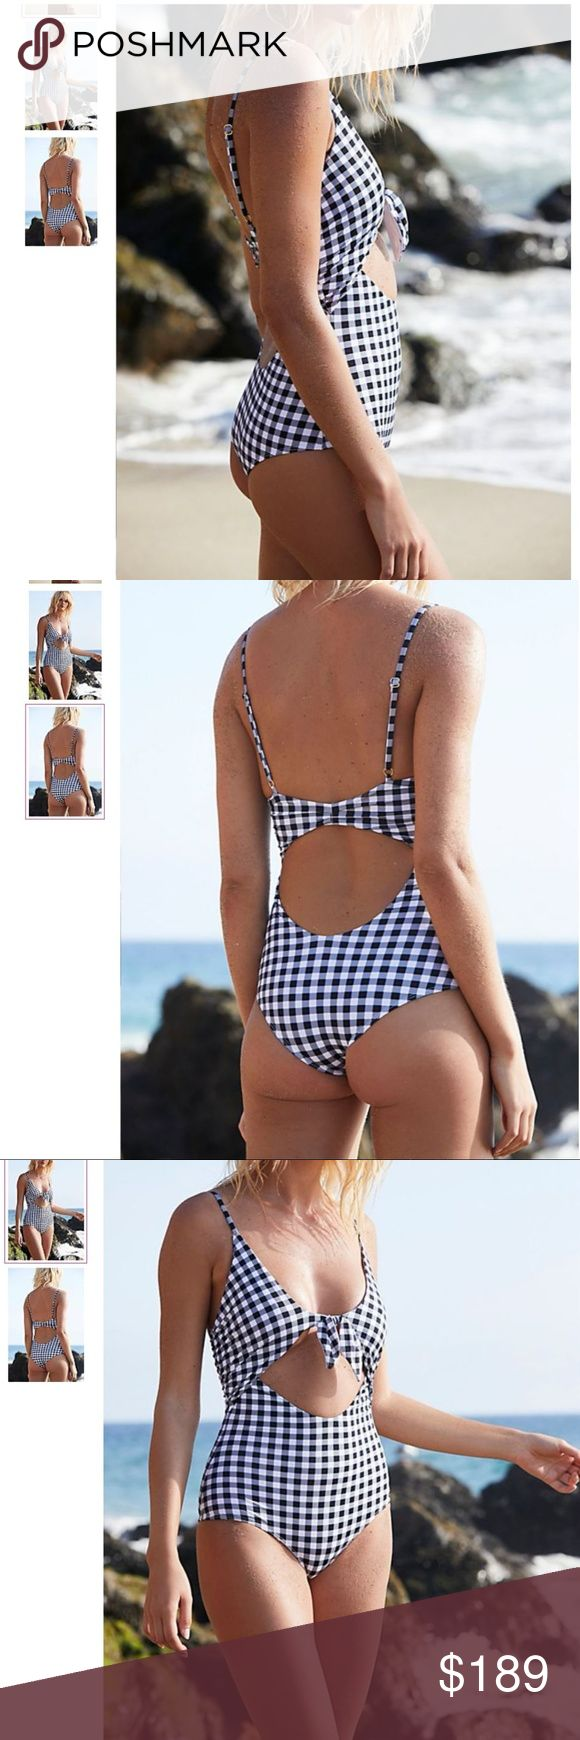 RARE Beach Riot Gingham One-Piece Brand New American made gingham printed one-piece swimsuit featured in a retro-inspired silhouette.  Cutout detailing in front and back Sweet tie detailing Adjustable straps Cheeky bottom coverage Lined Care/Import Hand Wash Cold  Made in the USA  Reformation, Marysia, Free People for Exposure Beach Riot Swim One Pieces